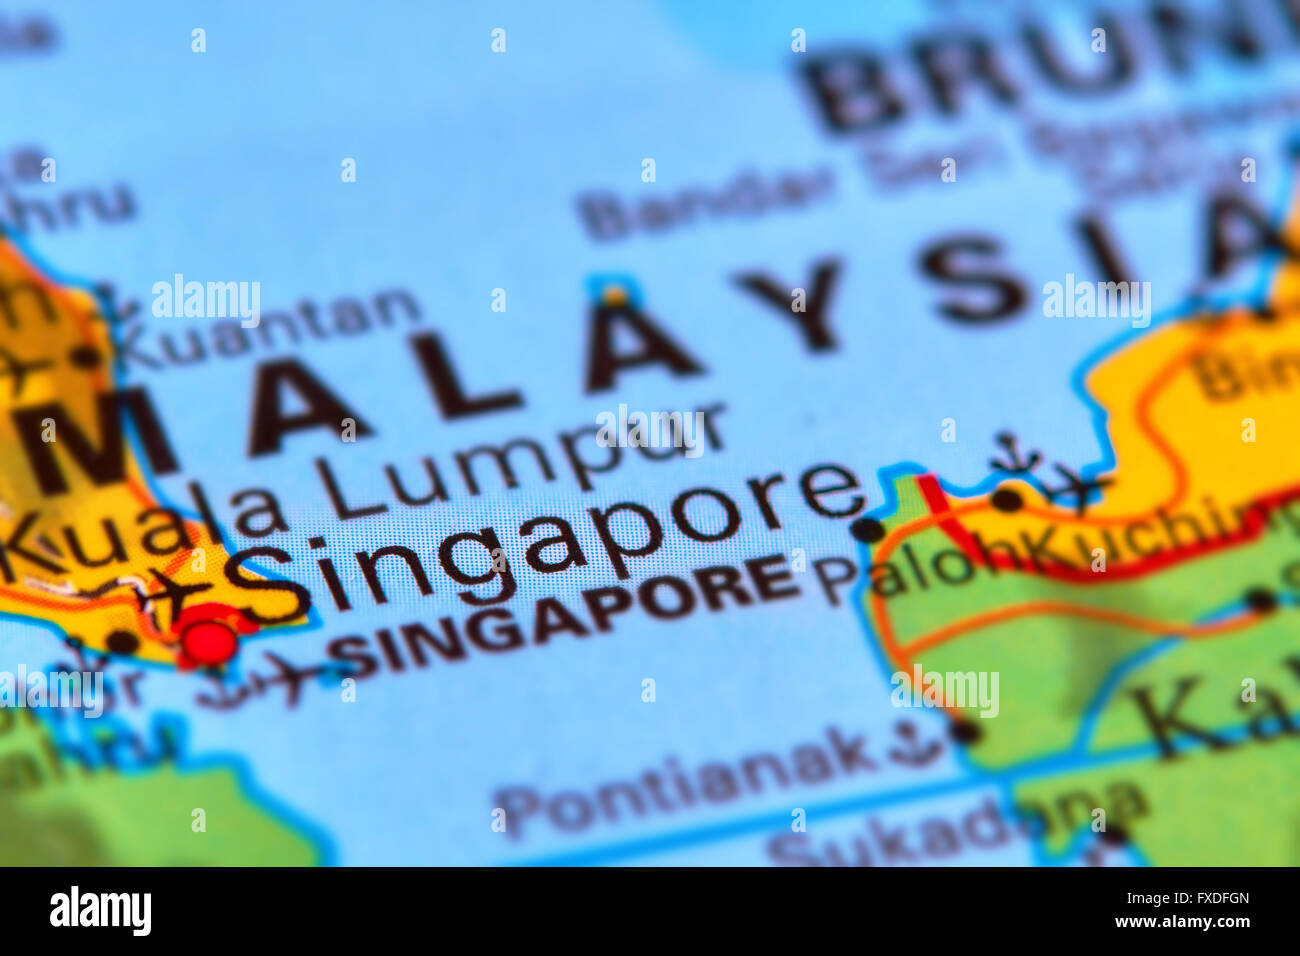 Singapore Citystate in Asia on the World Map Stock Photo Royalty